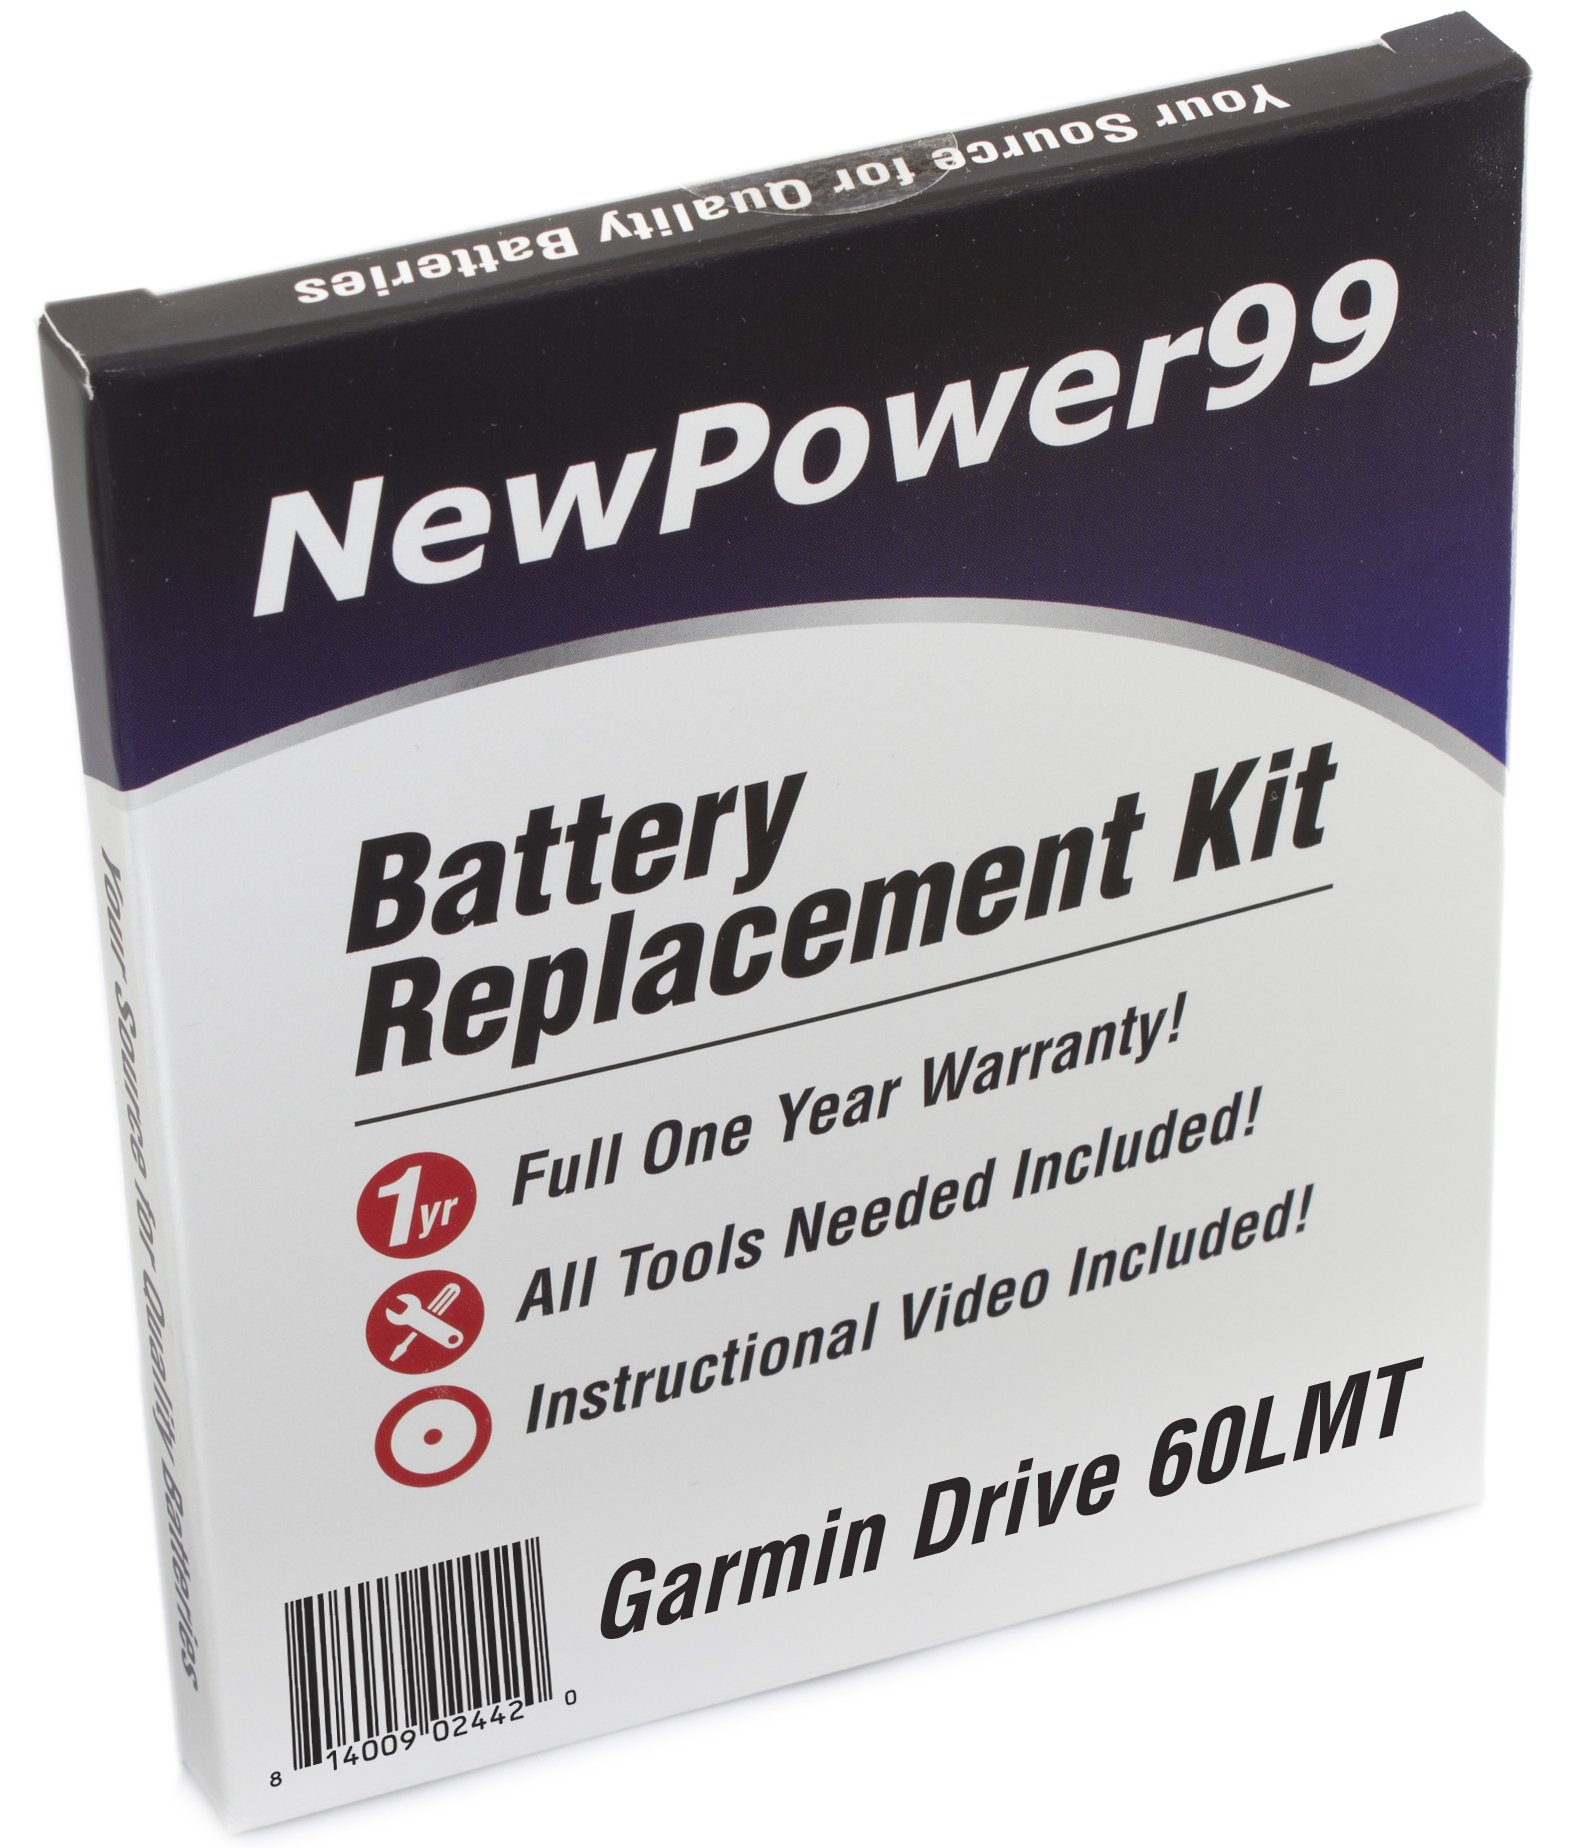 NewPower99 Battery Replacement Kit for Garmin Drive 60LMT with Installation Video, Tools, and Extended Life Battery. by NewPower99